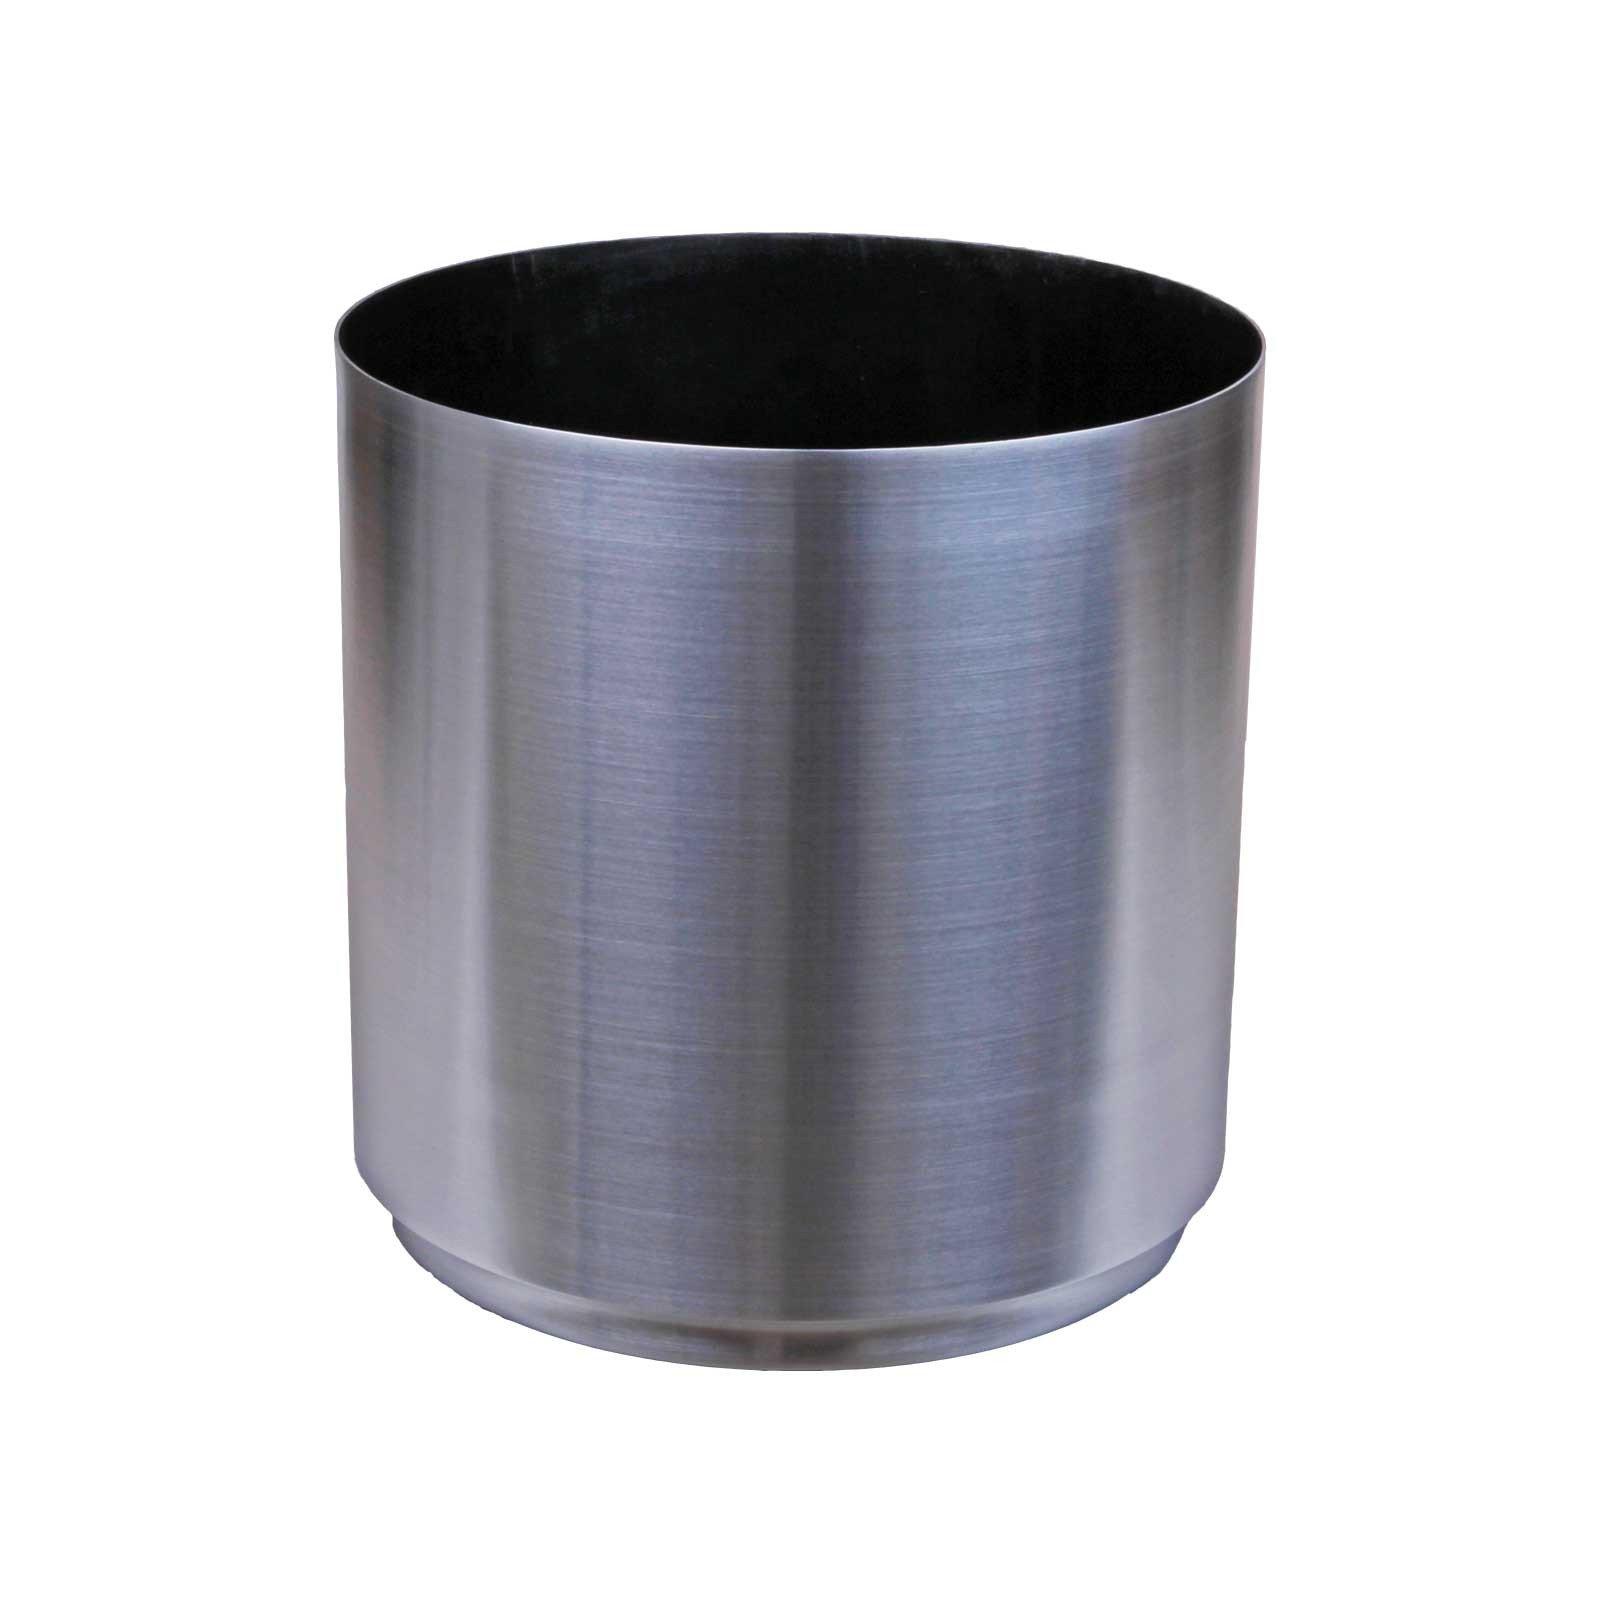 Large Round Metal Planter - Aluminum - 13'/16'/20'/24' Diameter - Cylinder by Oso Polar